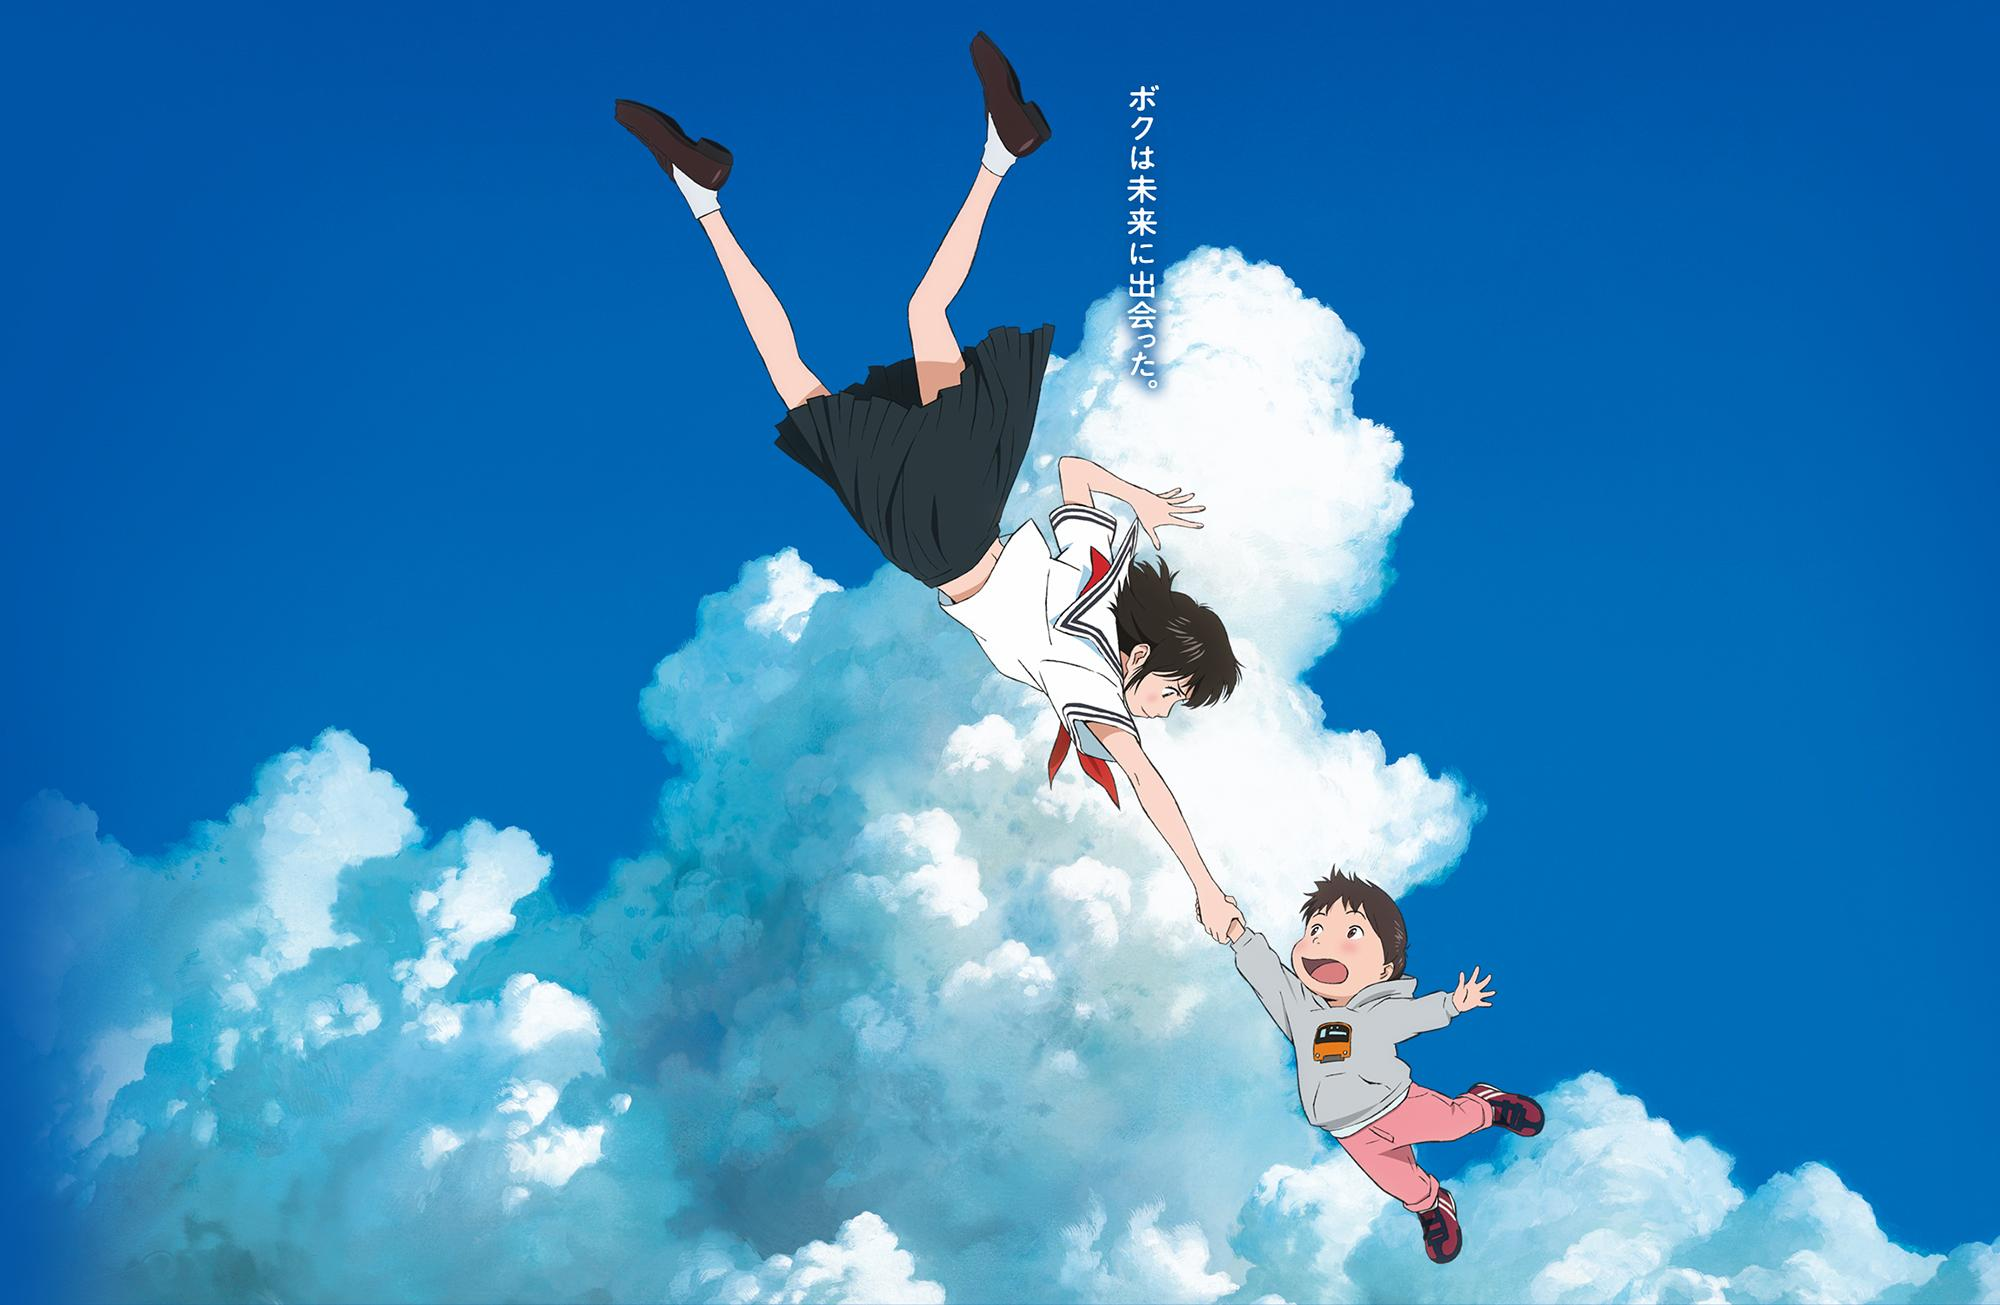 clouds, falling from sky, Mirai no Mirai